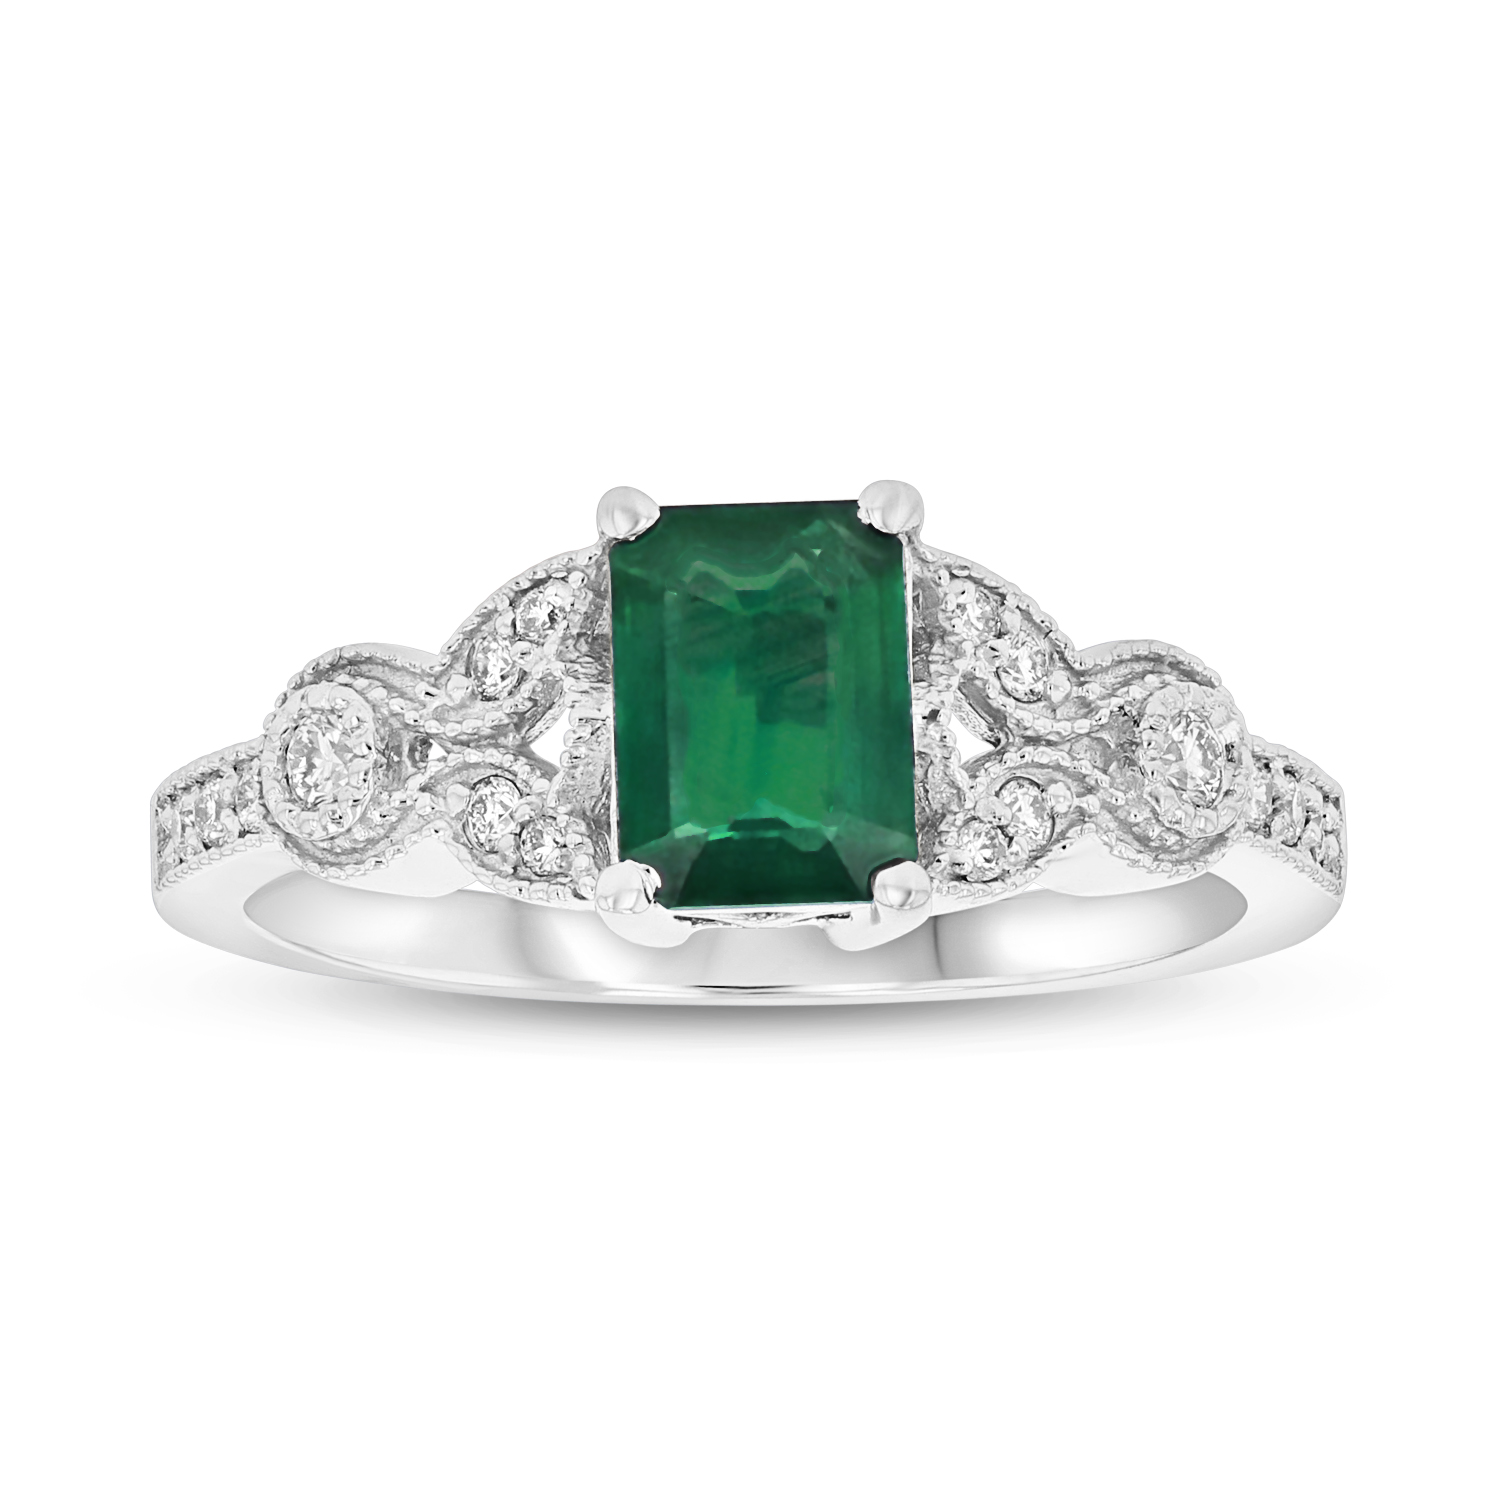 View 1.05ctw Diamond and Emerald Engagement Ring in 14k White Gold